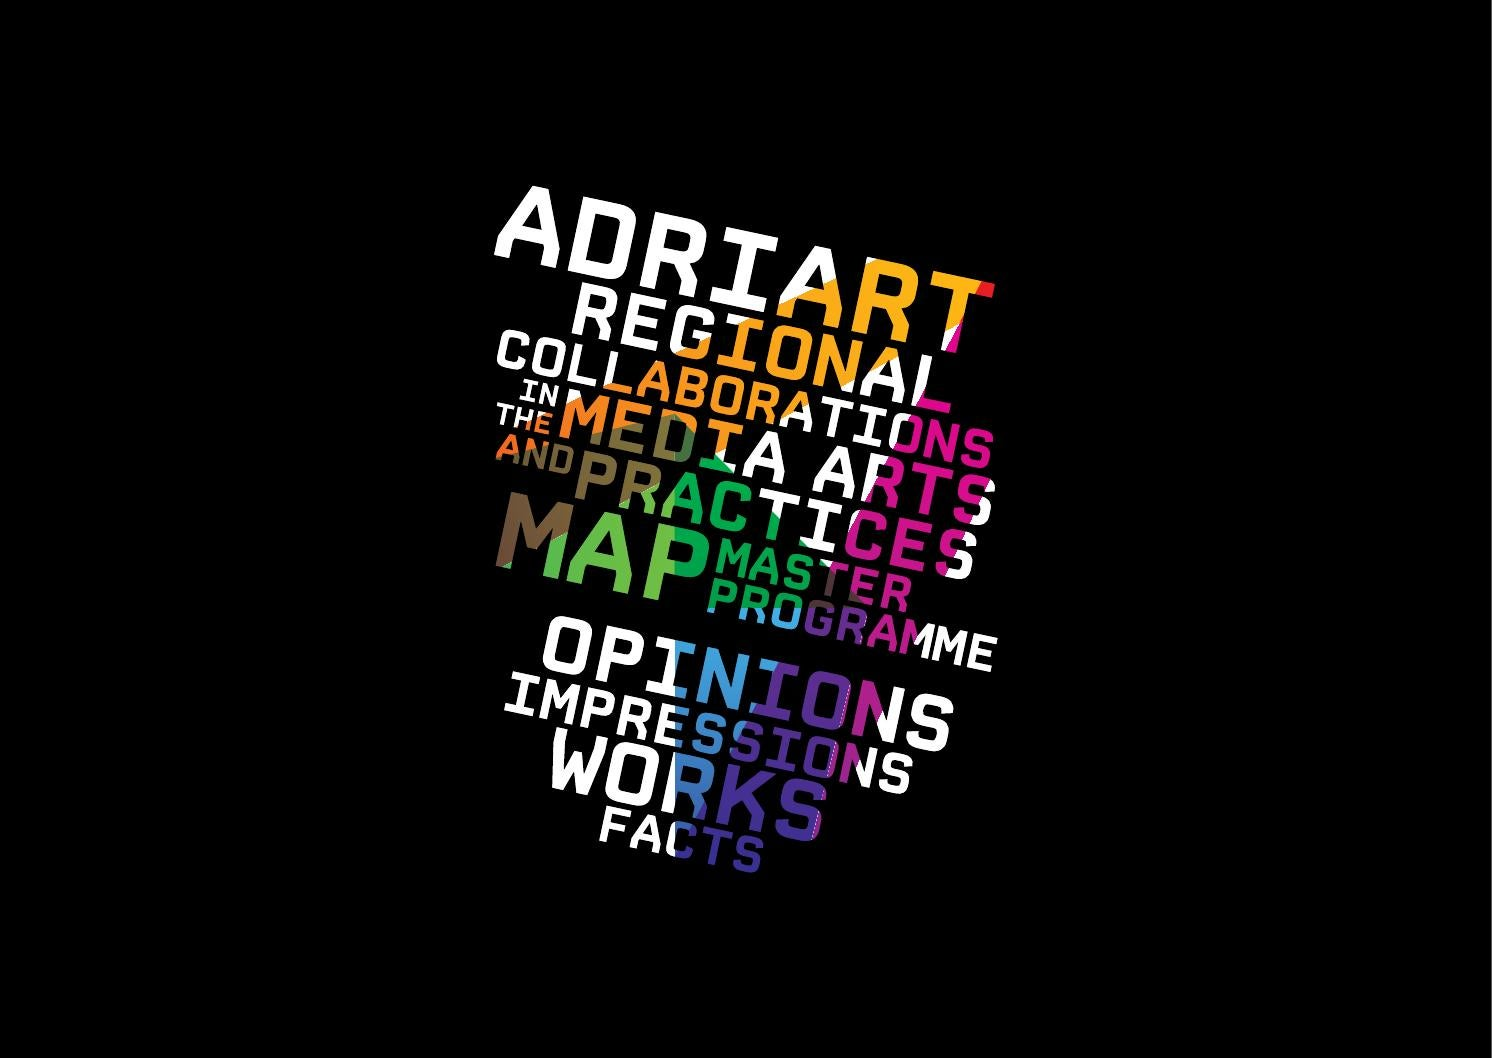 ADRIART Regional Collaborations In The Media Arts And Practices MAP